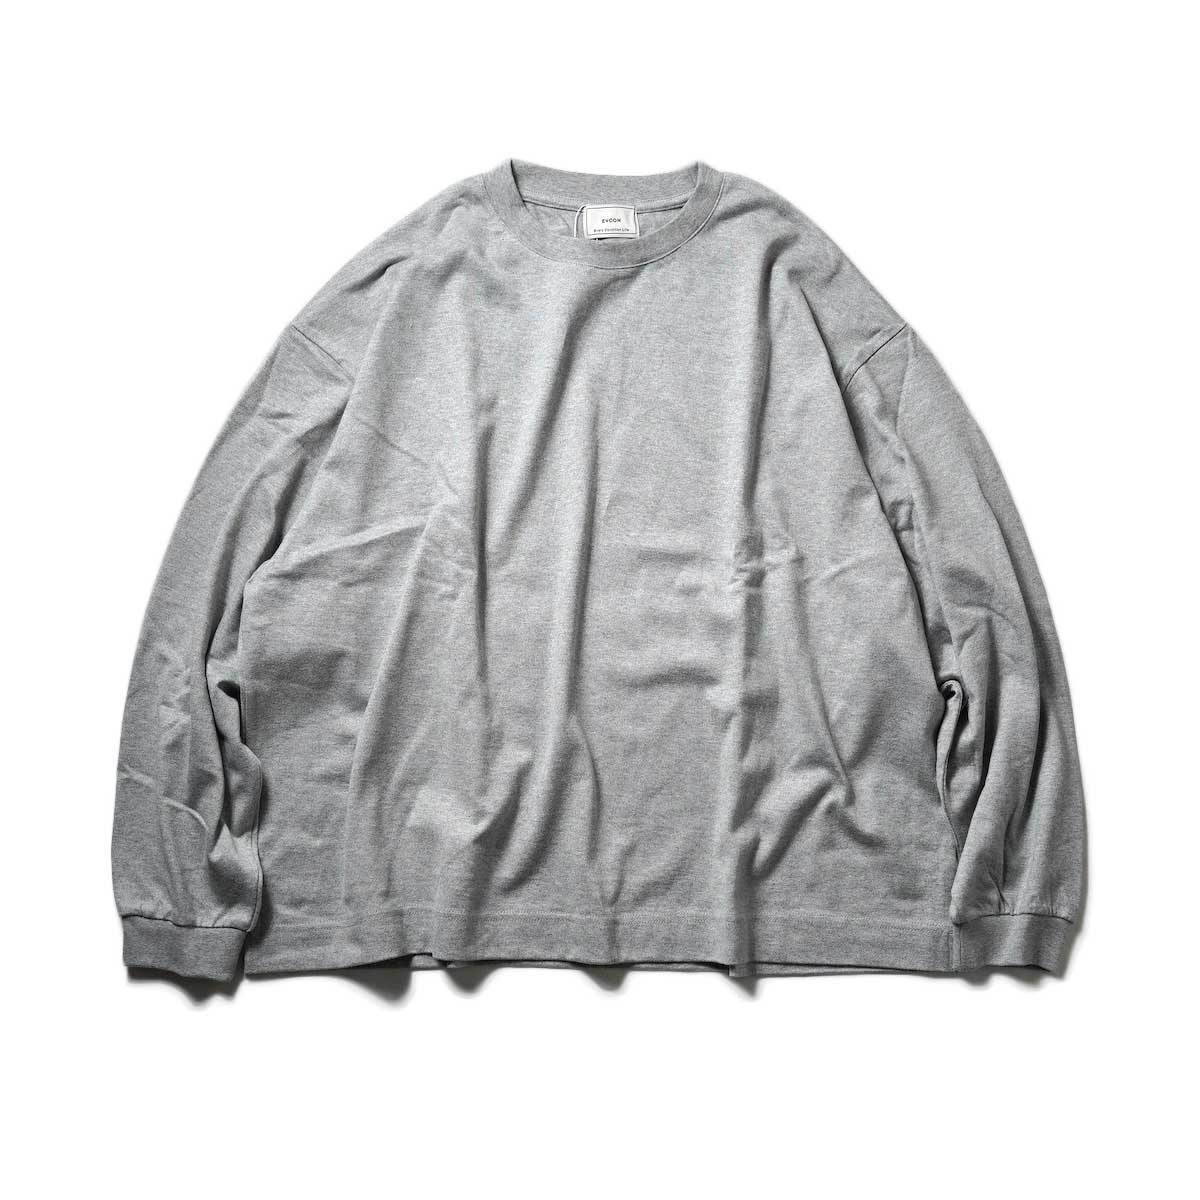 EVCON / WIDE L/S T-Shirt (Gray) 正面